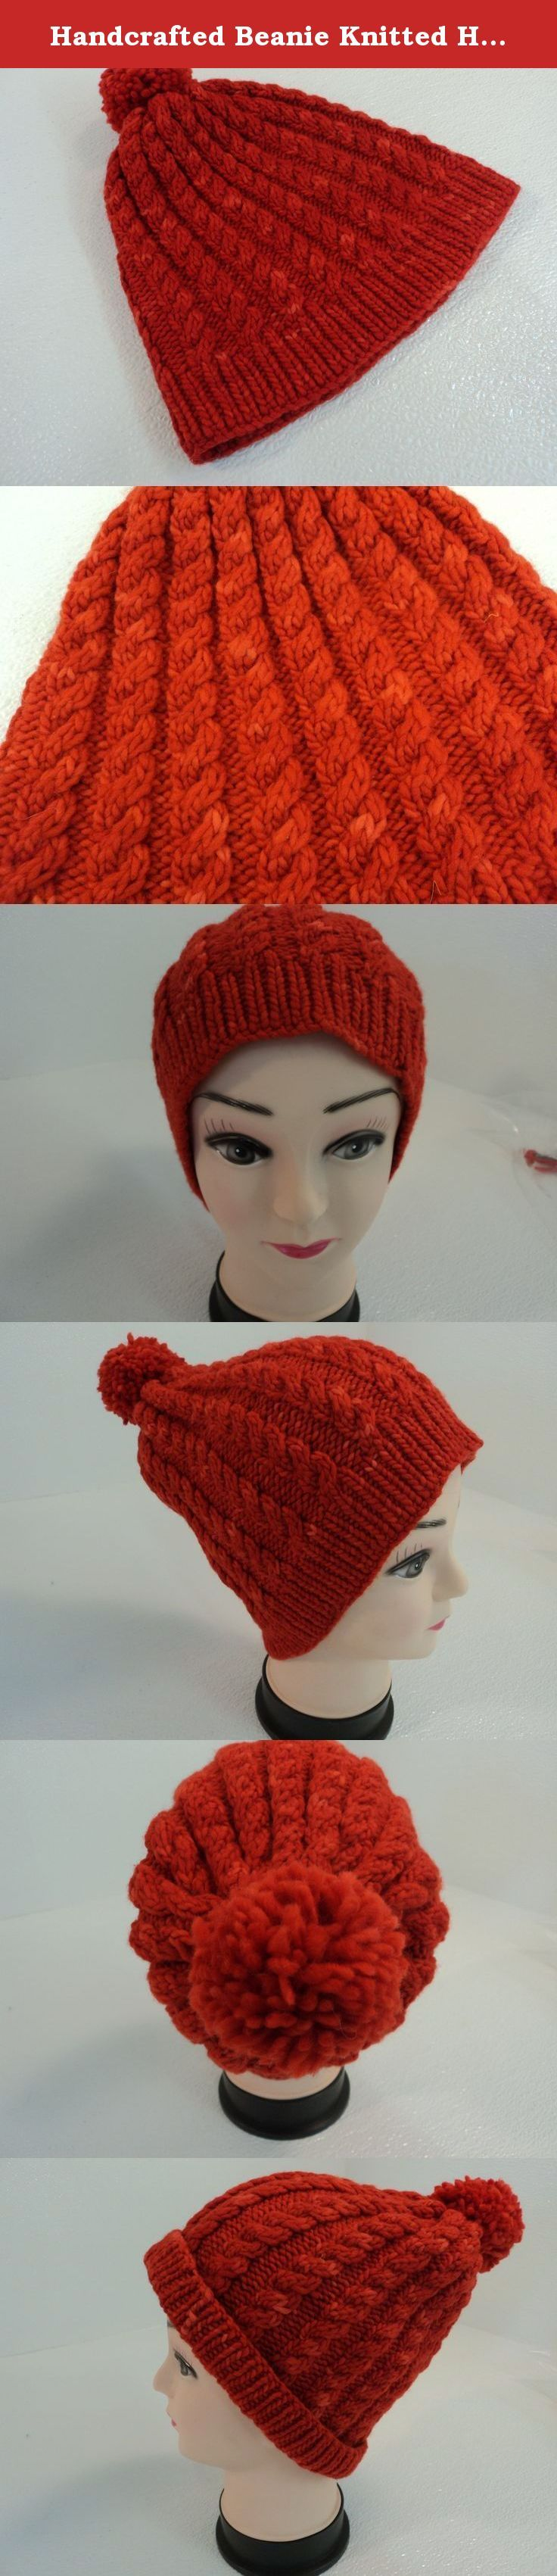 Handcrafted Beanie Knitted Hat Red Pom Pom Cable Stitch 100% Merino Wool Female. Gorgeous hat knit in a beautiful cable pattern.Handcrafted Beanie Knitted Hat Red Pom Pom Cable Stitch 100% Merino Wool Female. Item Number: 836-042715. Dimensions: 9in L x 5in W x 1in D - Box Size. Color: Reds. Country of Manufacture: United States. Style: Beanie Slouchy. Style: hipster. Style: zen. Feature: 20in Circumference Relaxed. Age Group: Adult. Age Range: 18-99. Size (Women's): Standard. Size Type:...